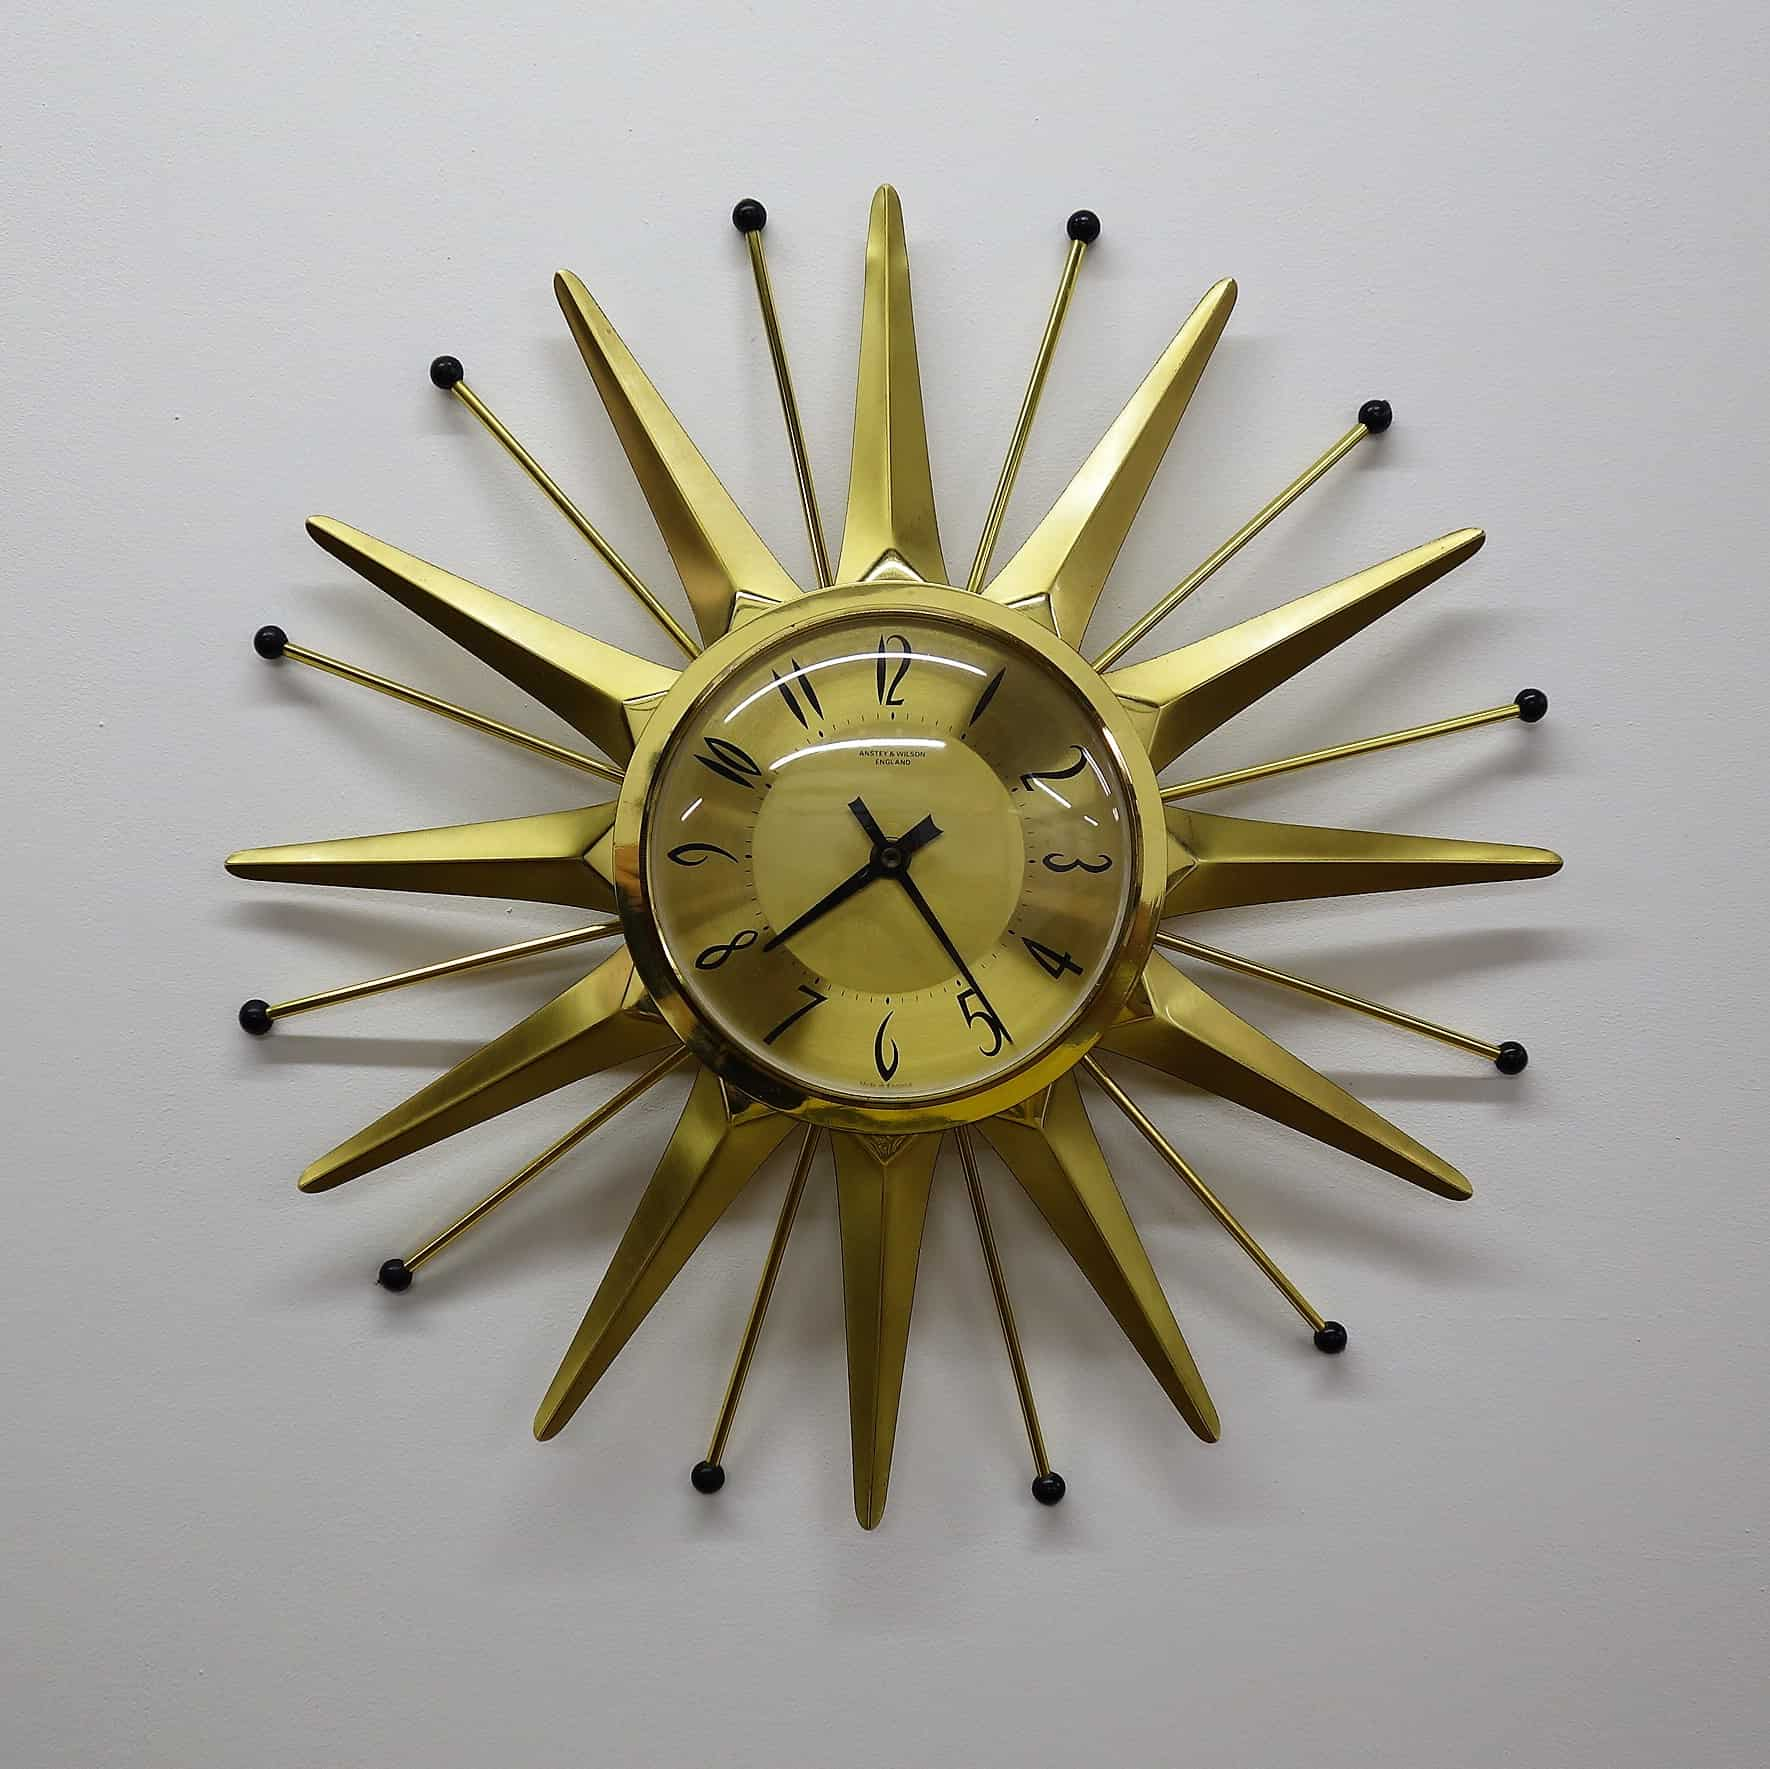 1960s star burst clock by Anstey and Wilson